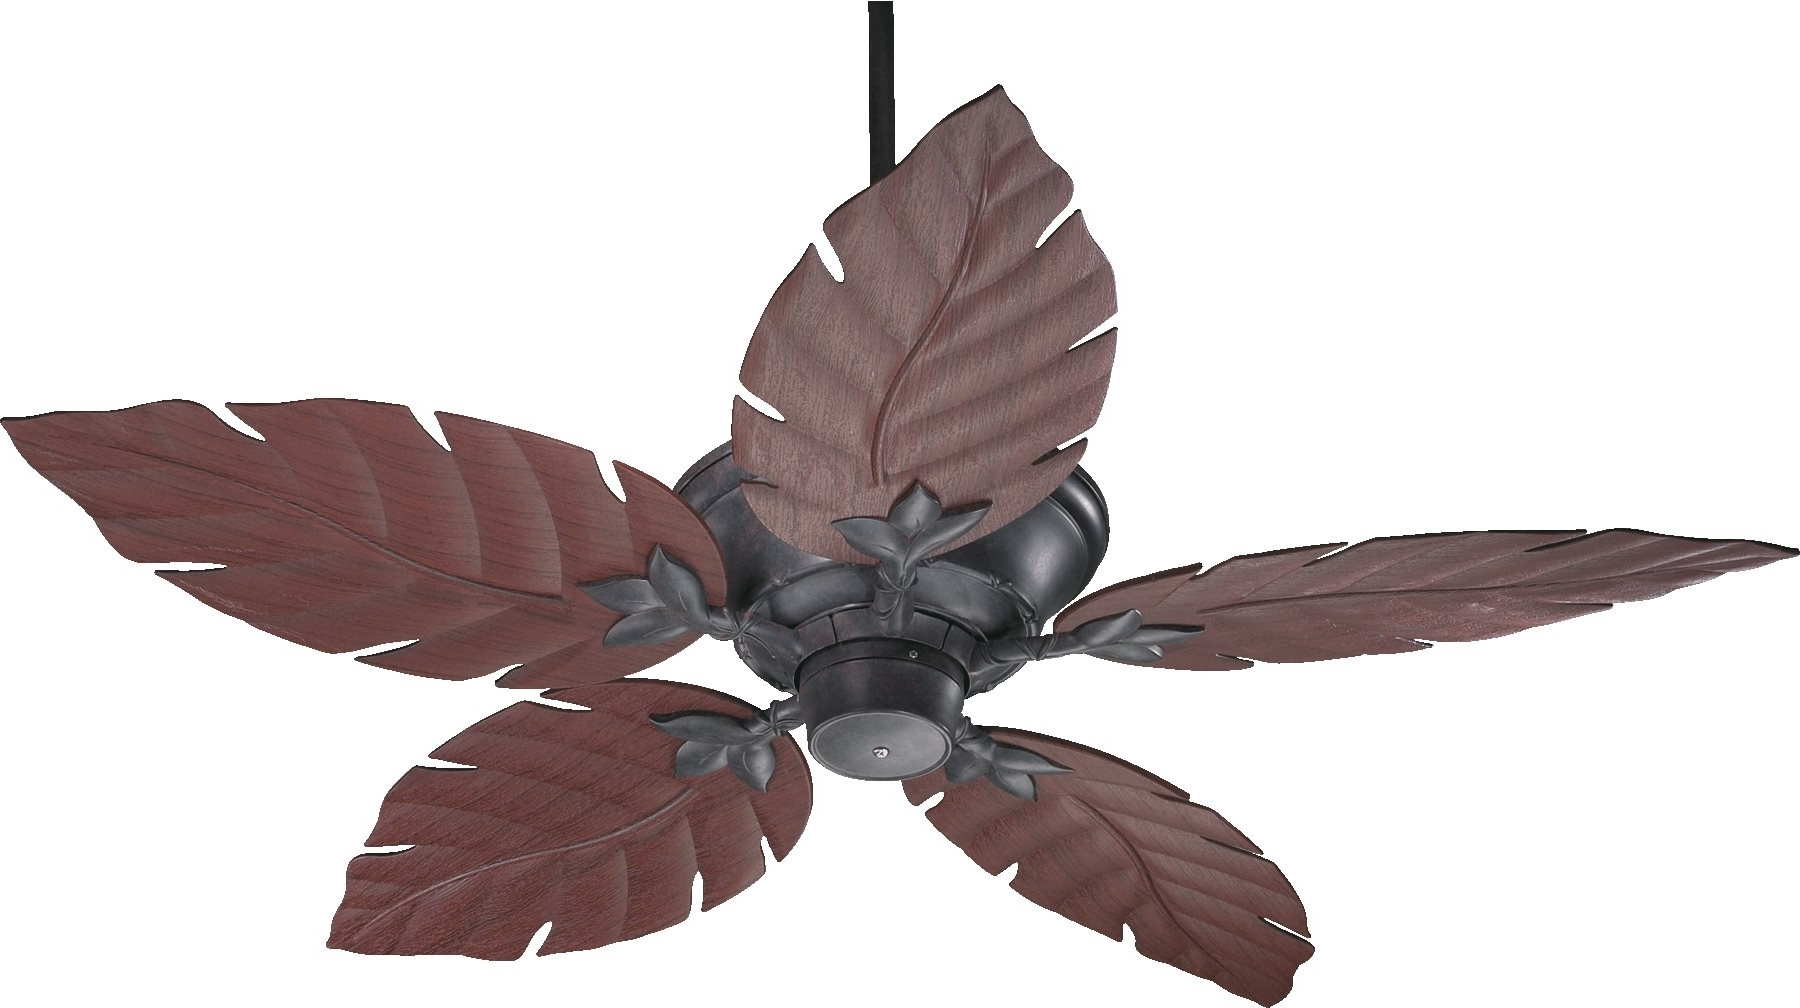 """Quorum Lighting 135525 Monaco 52"""" Patio Tropical Ceiling Fan Qr 135525 Intended For 2018 Quorum Outdoor Ceiling Fans (Gallery 19 of 20)"""